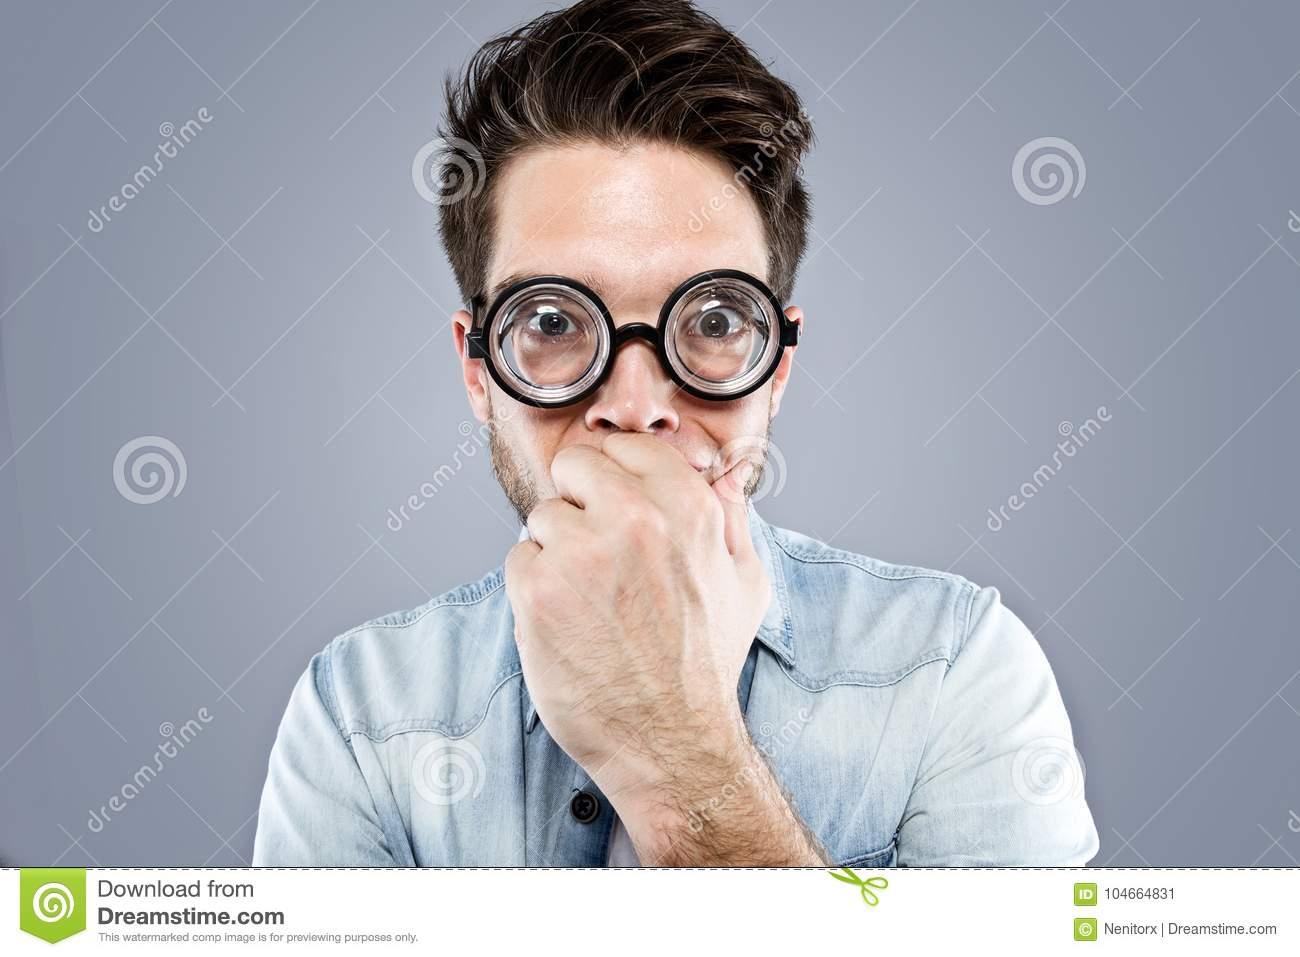 Handsome young man with funny glasses joking and making funny face over gray background.